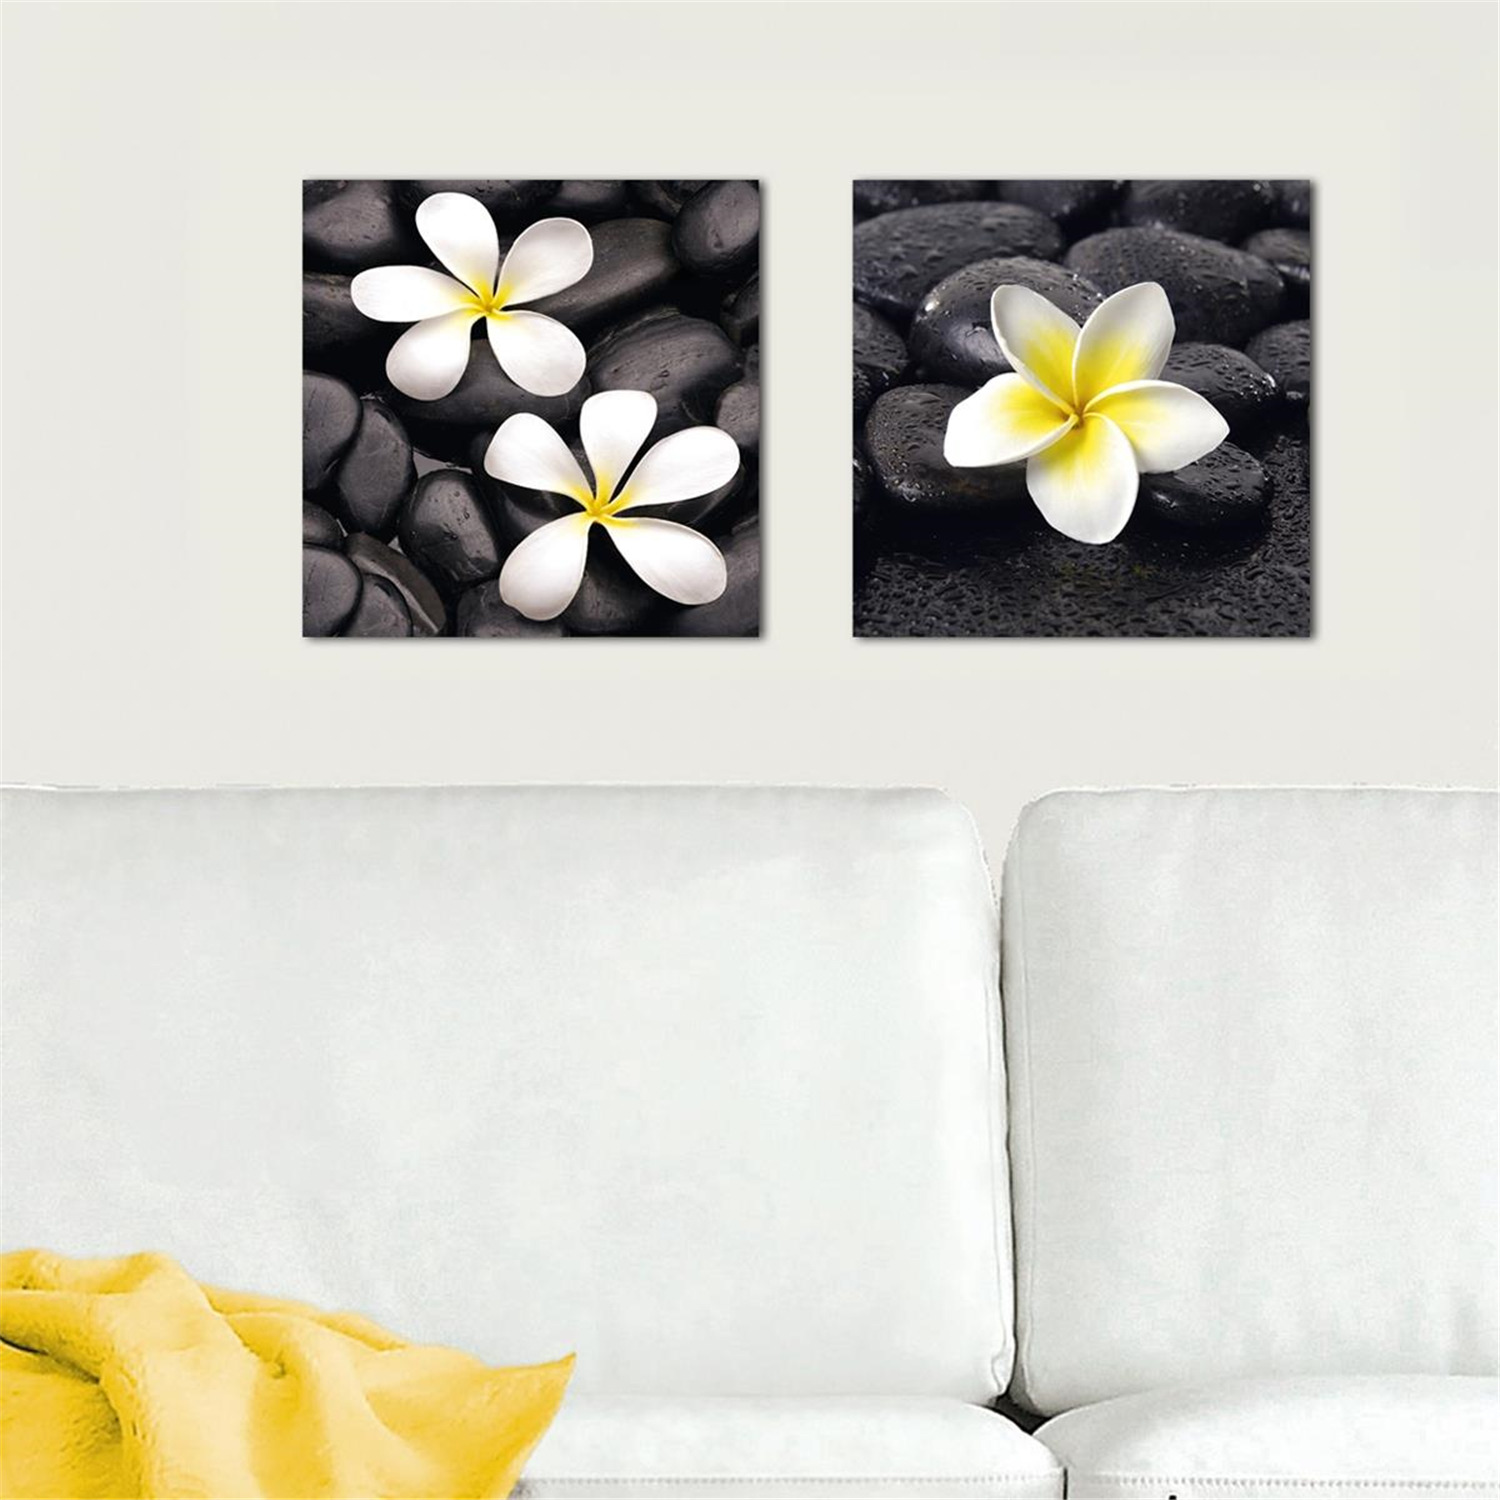 Platin art deco glass wall decor art on glass jasmine for Glass wall art